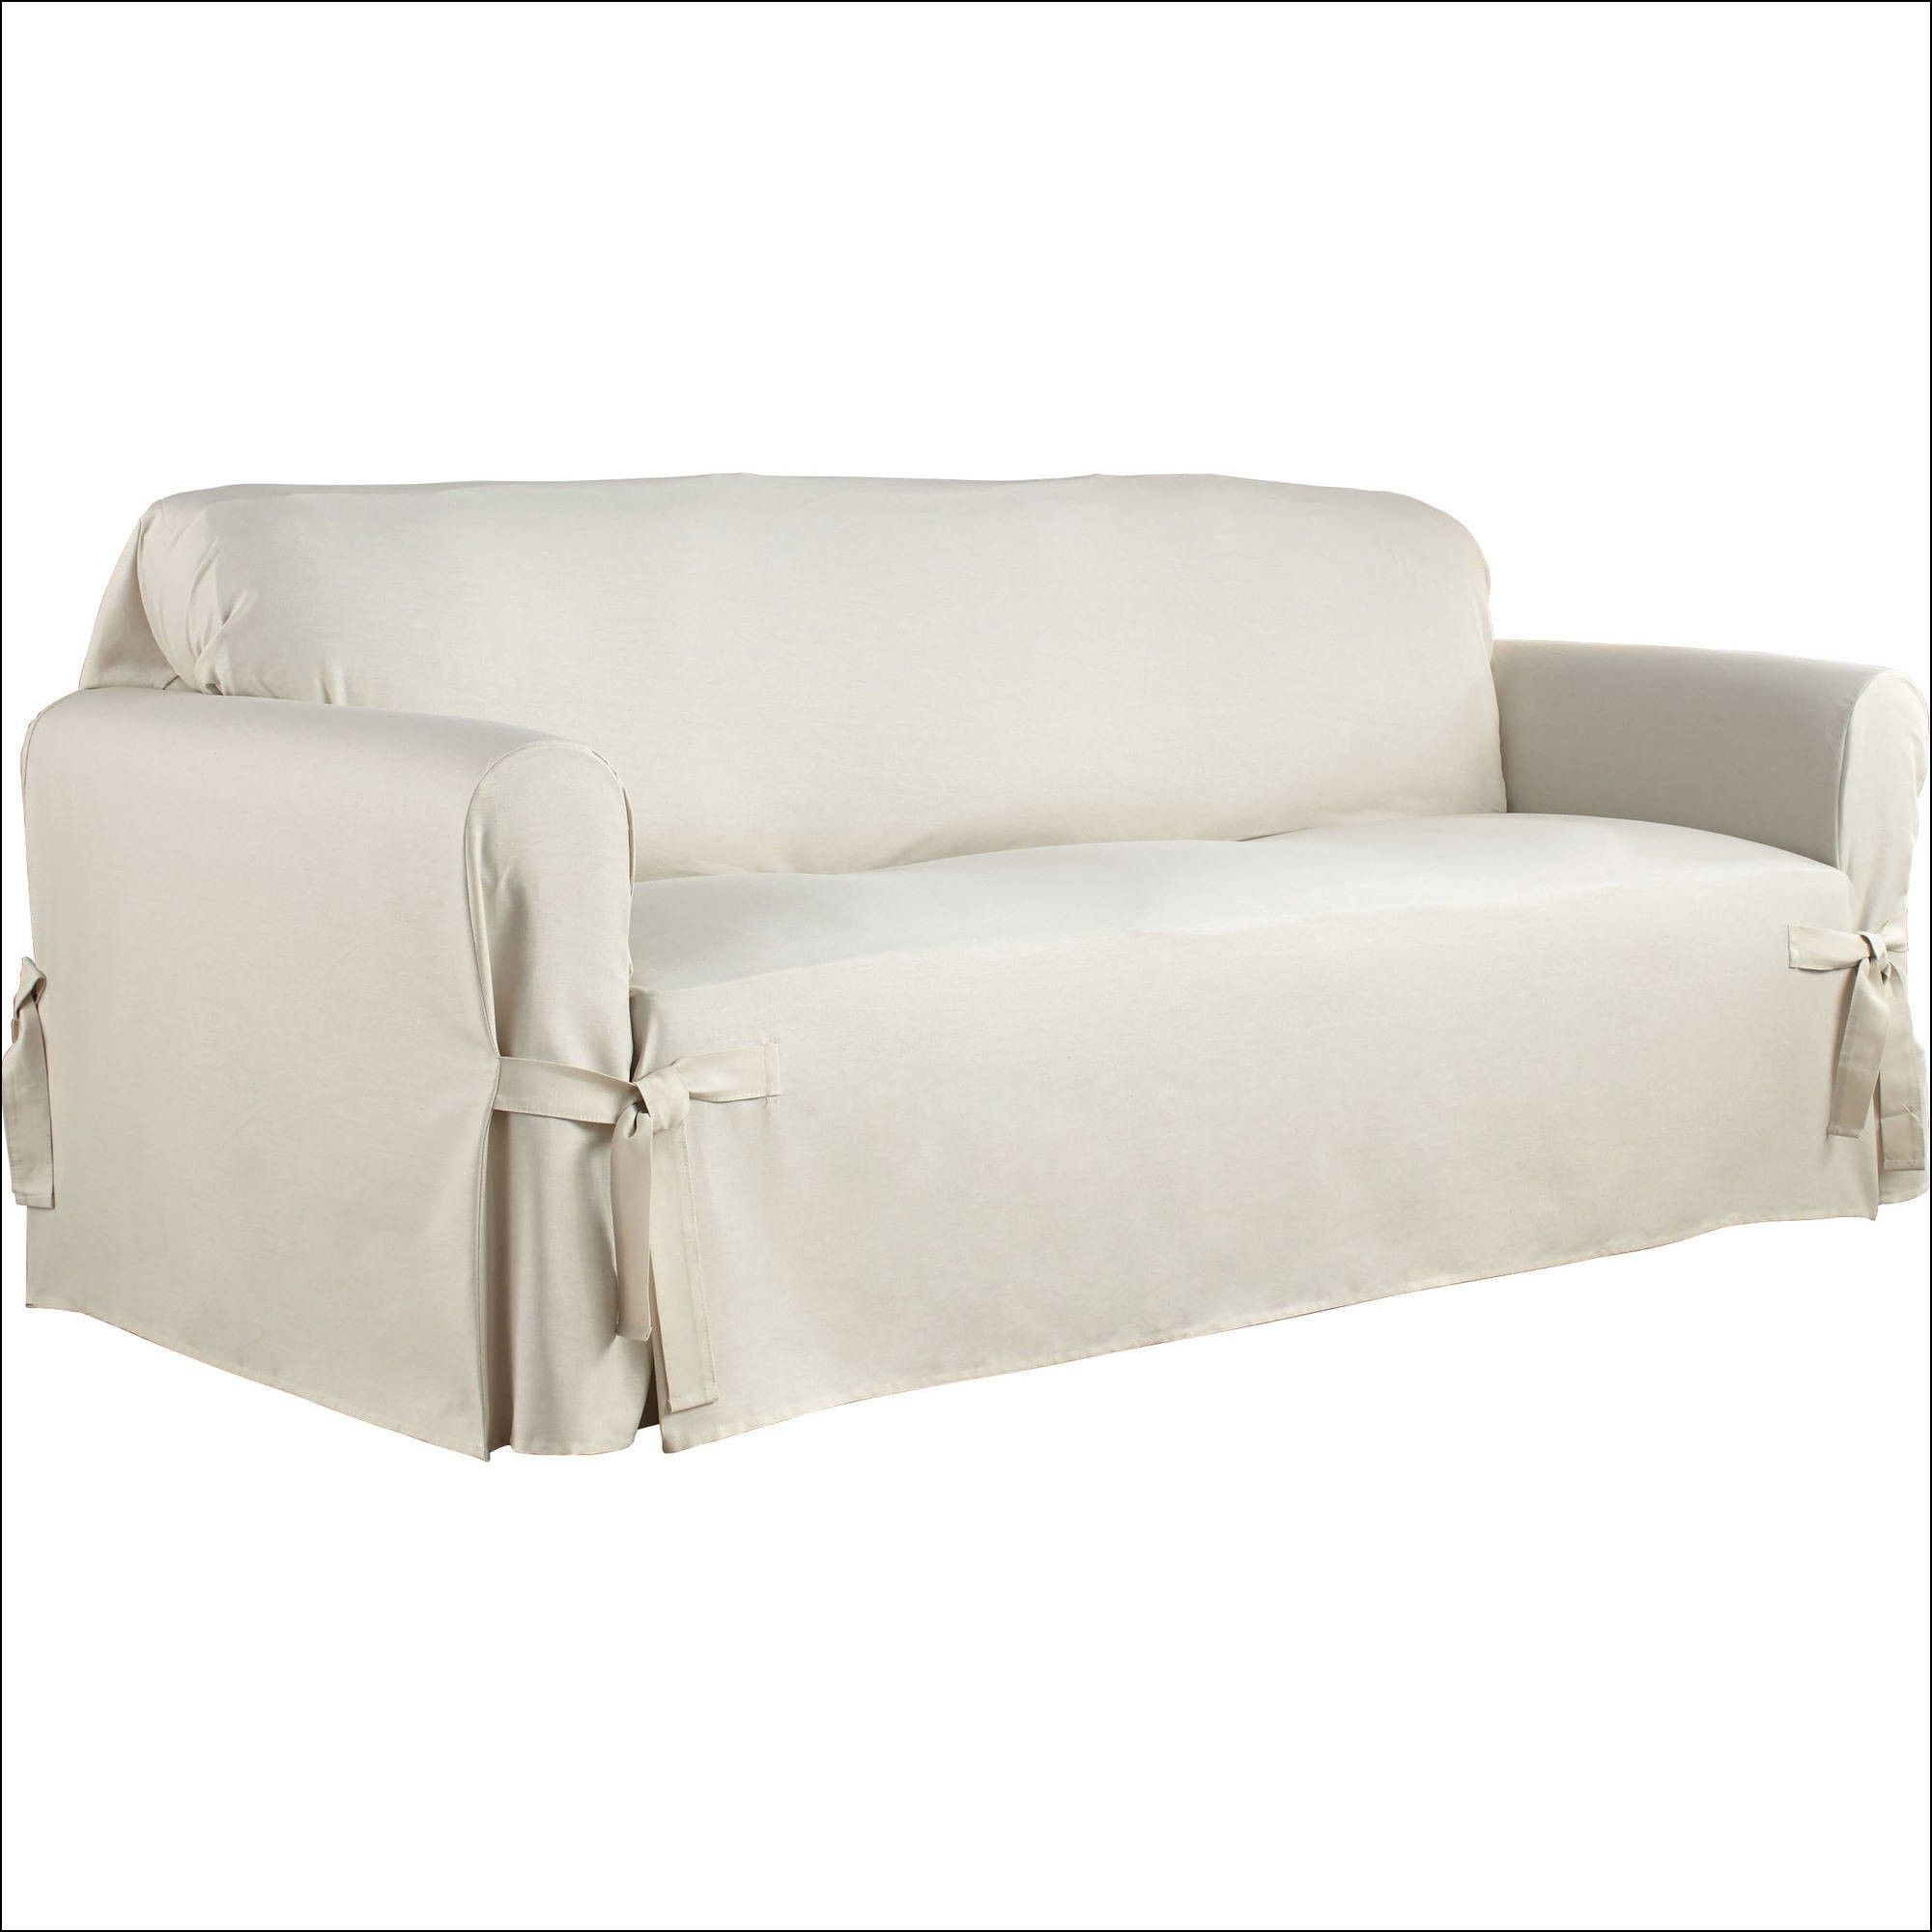 Superbe Sears Sofa Slipcovers